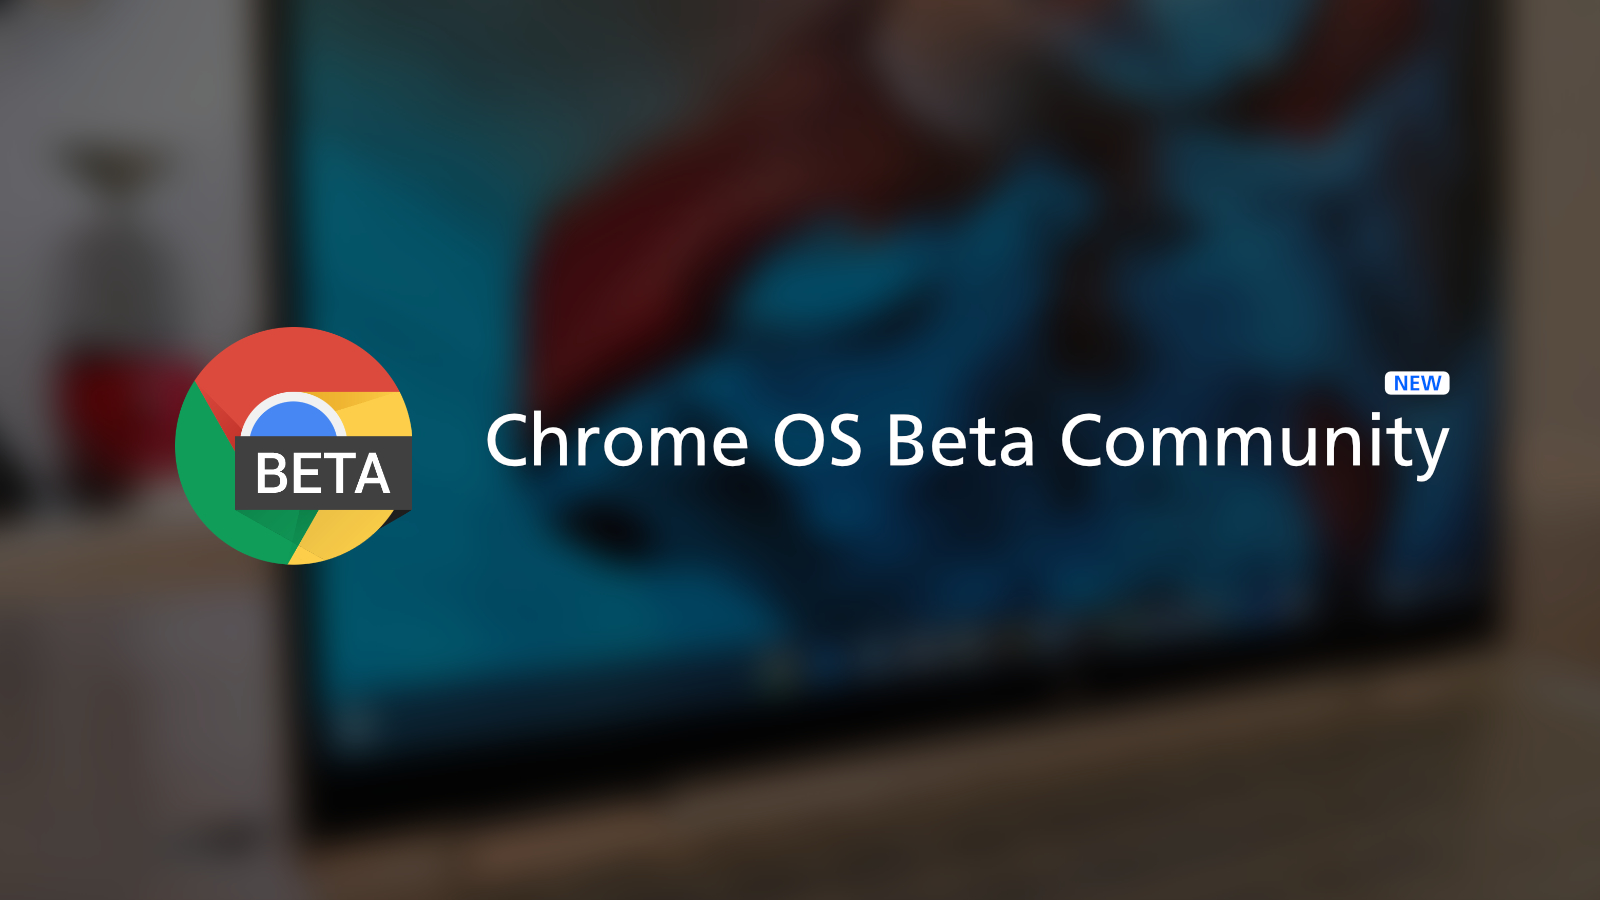 Chrome OS Beta Community will allow Google to directly inform testers of new features